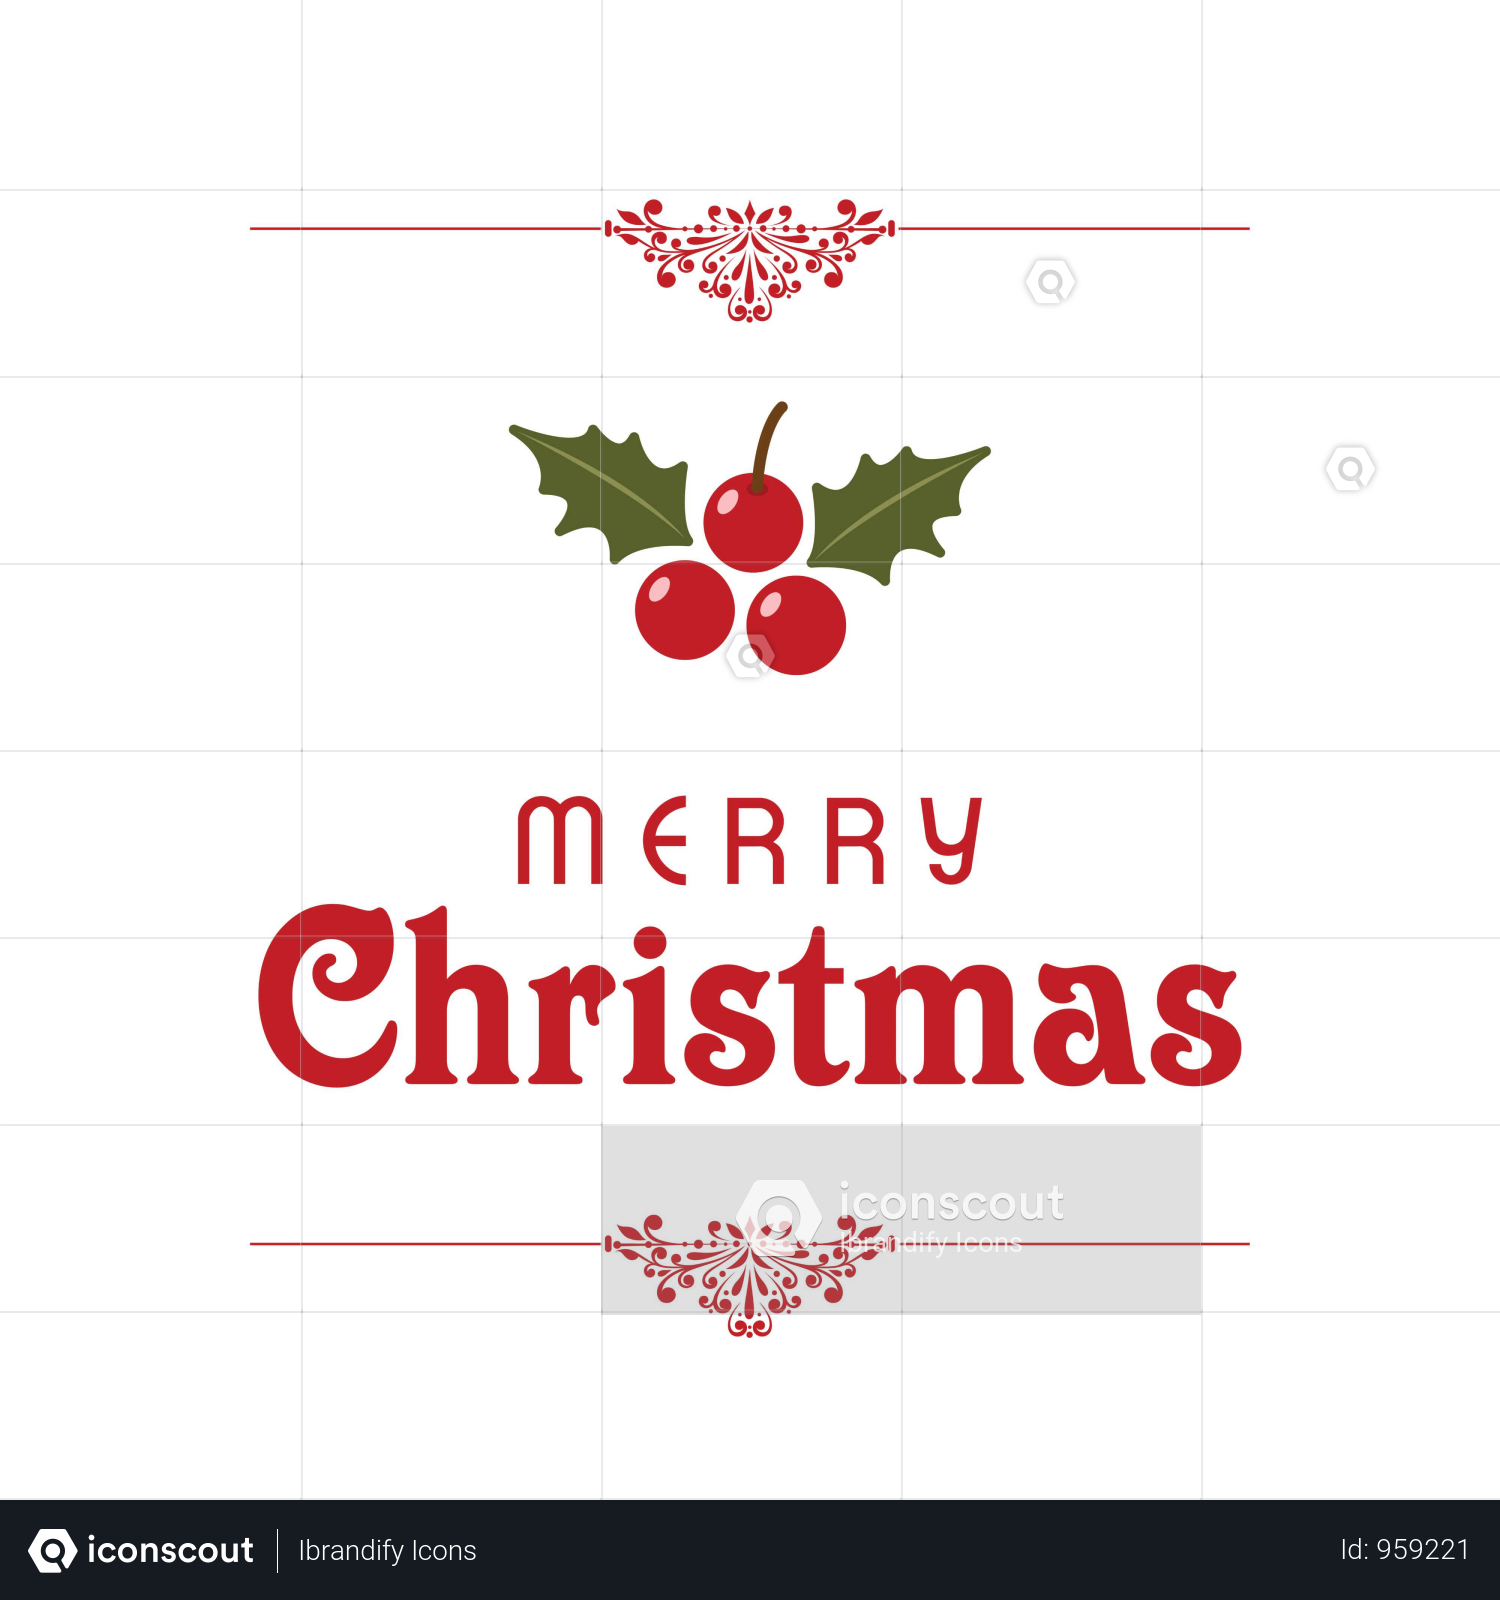 Christmas Typographic With Red Cherries Illustration